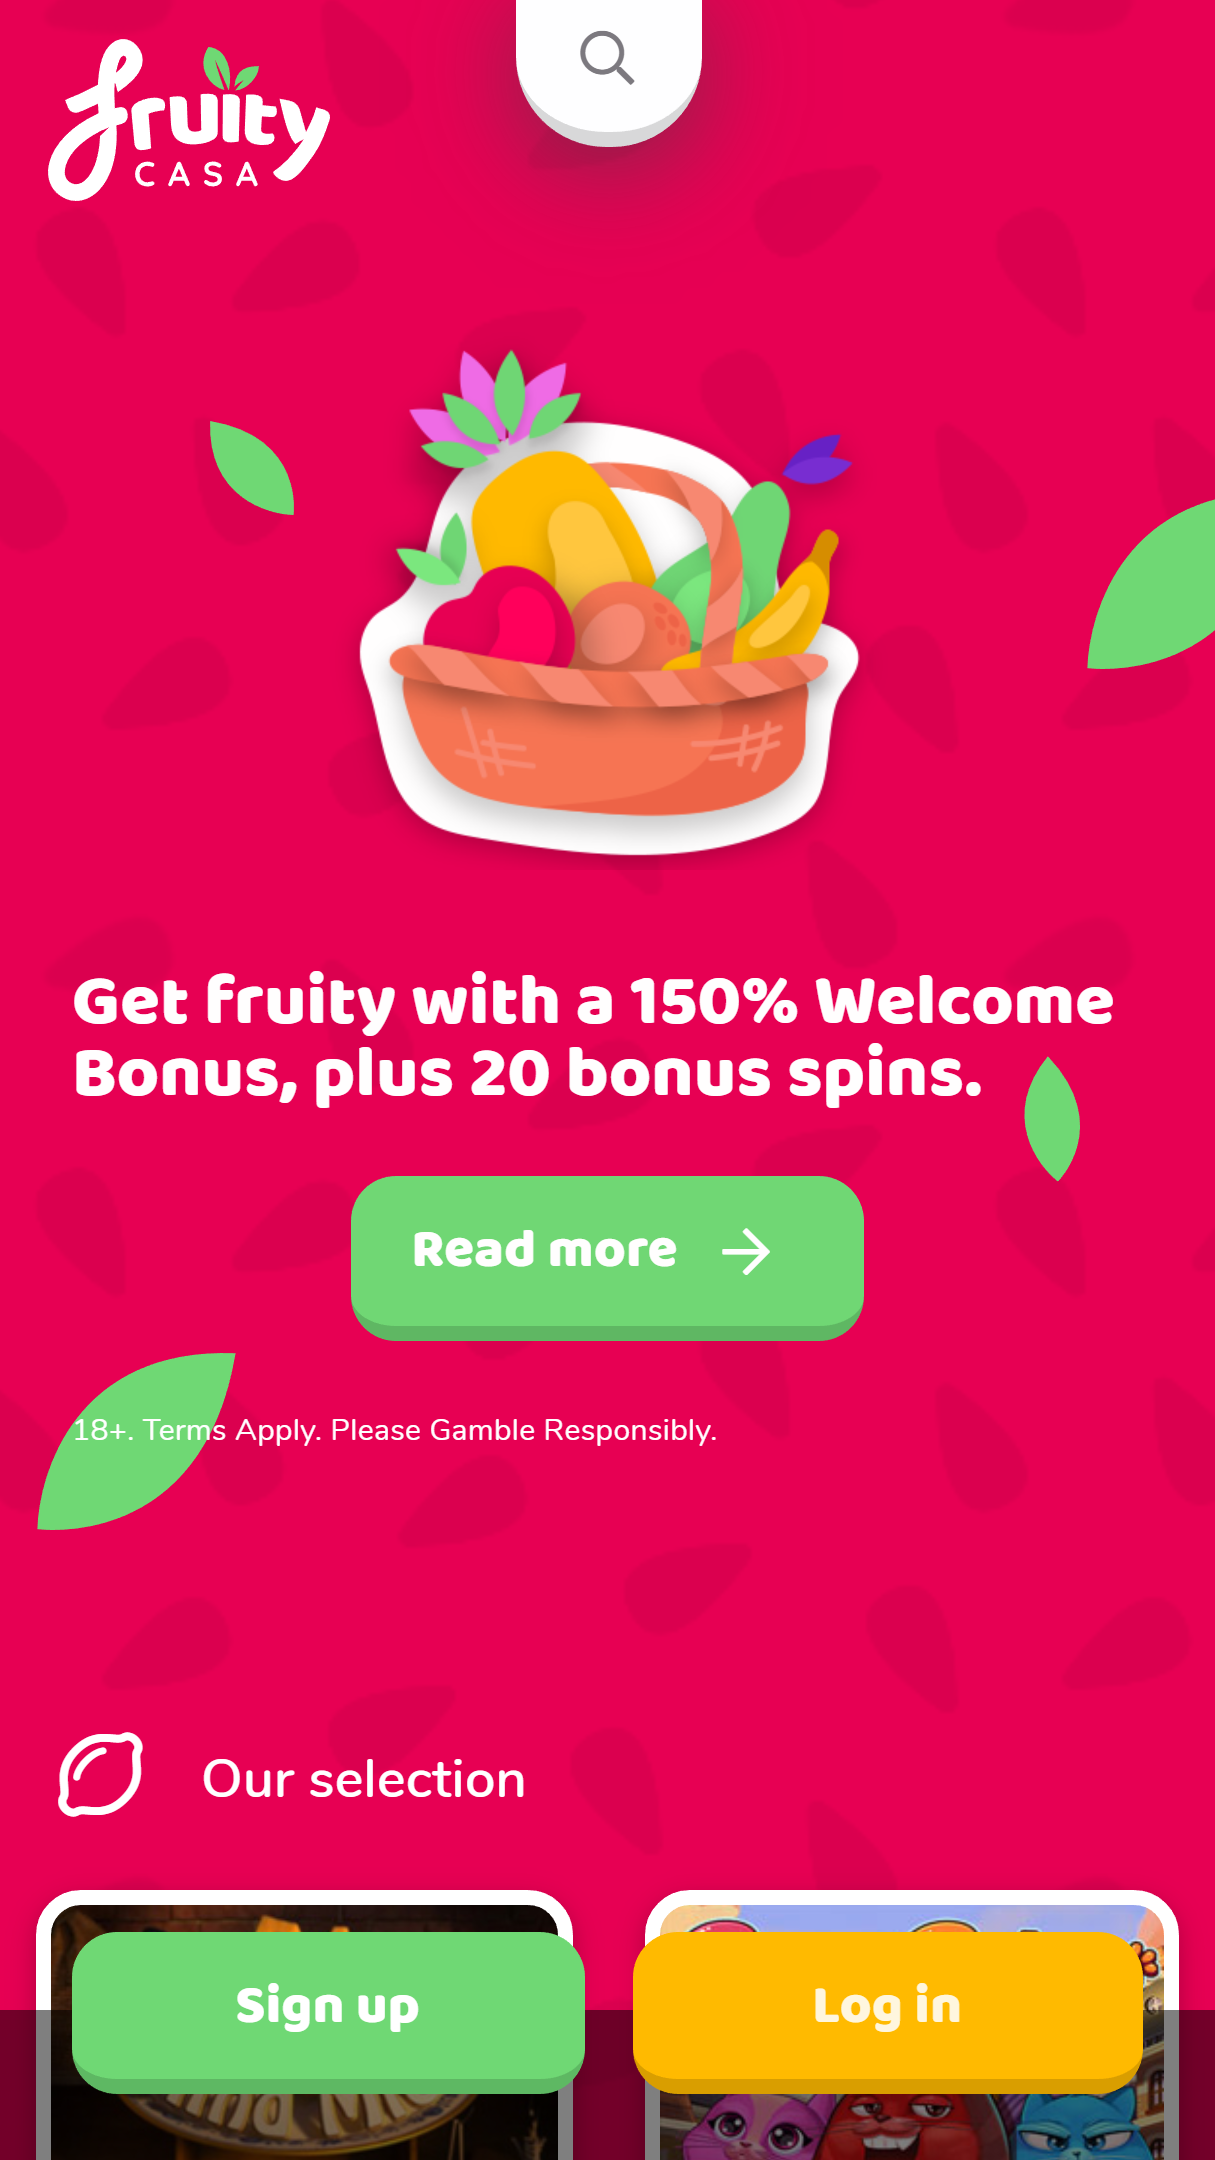 Fruity Casa Casino App Homepage